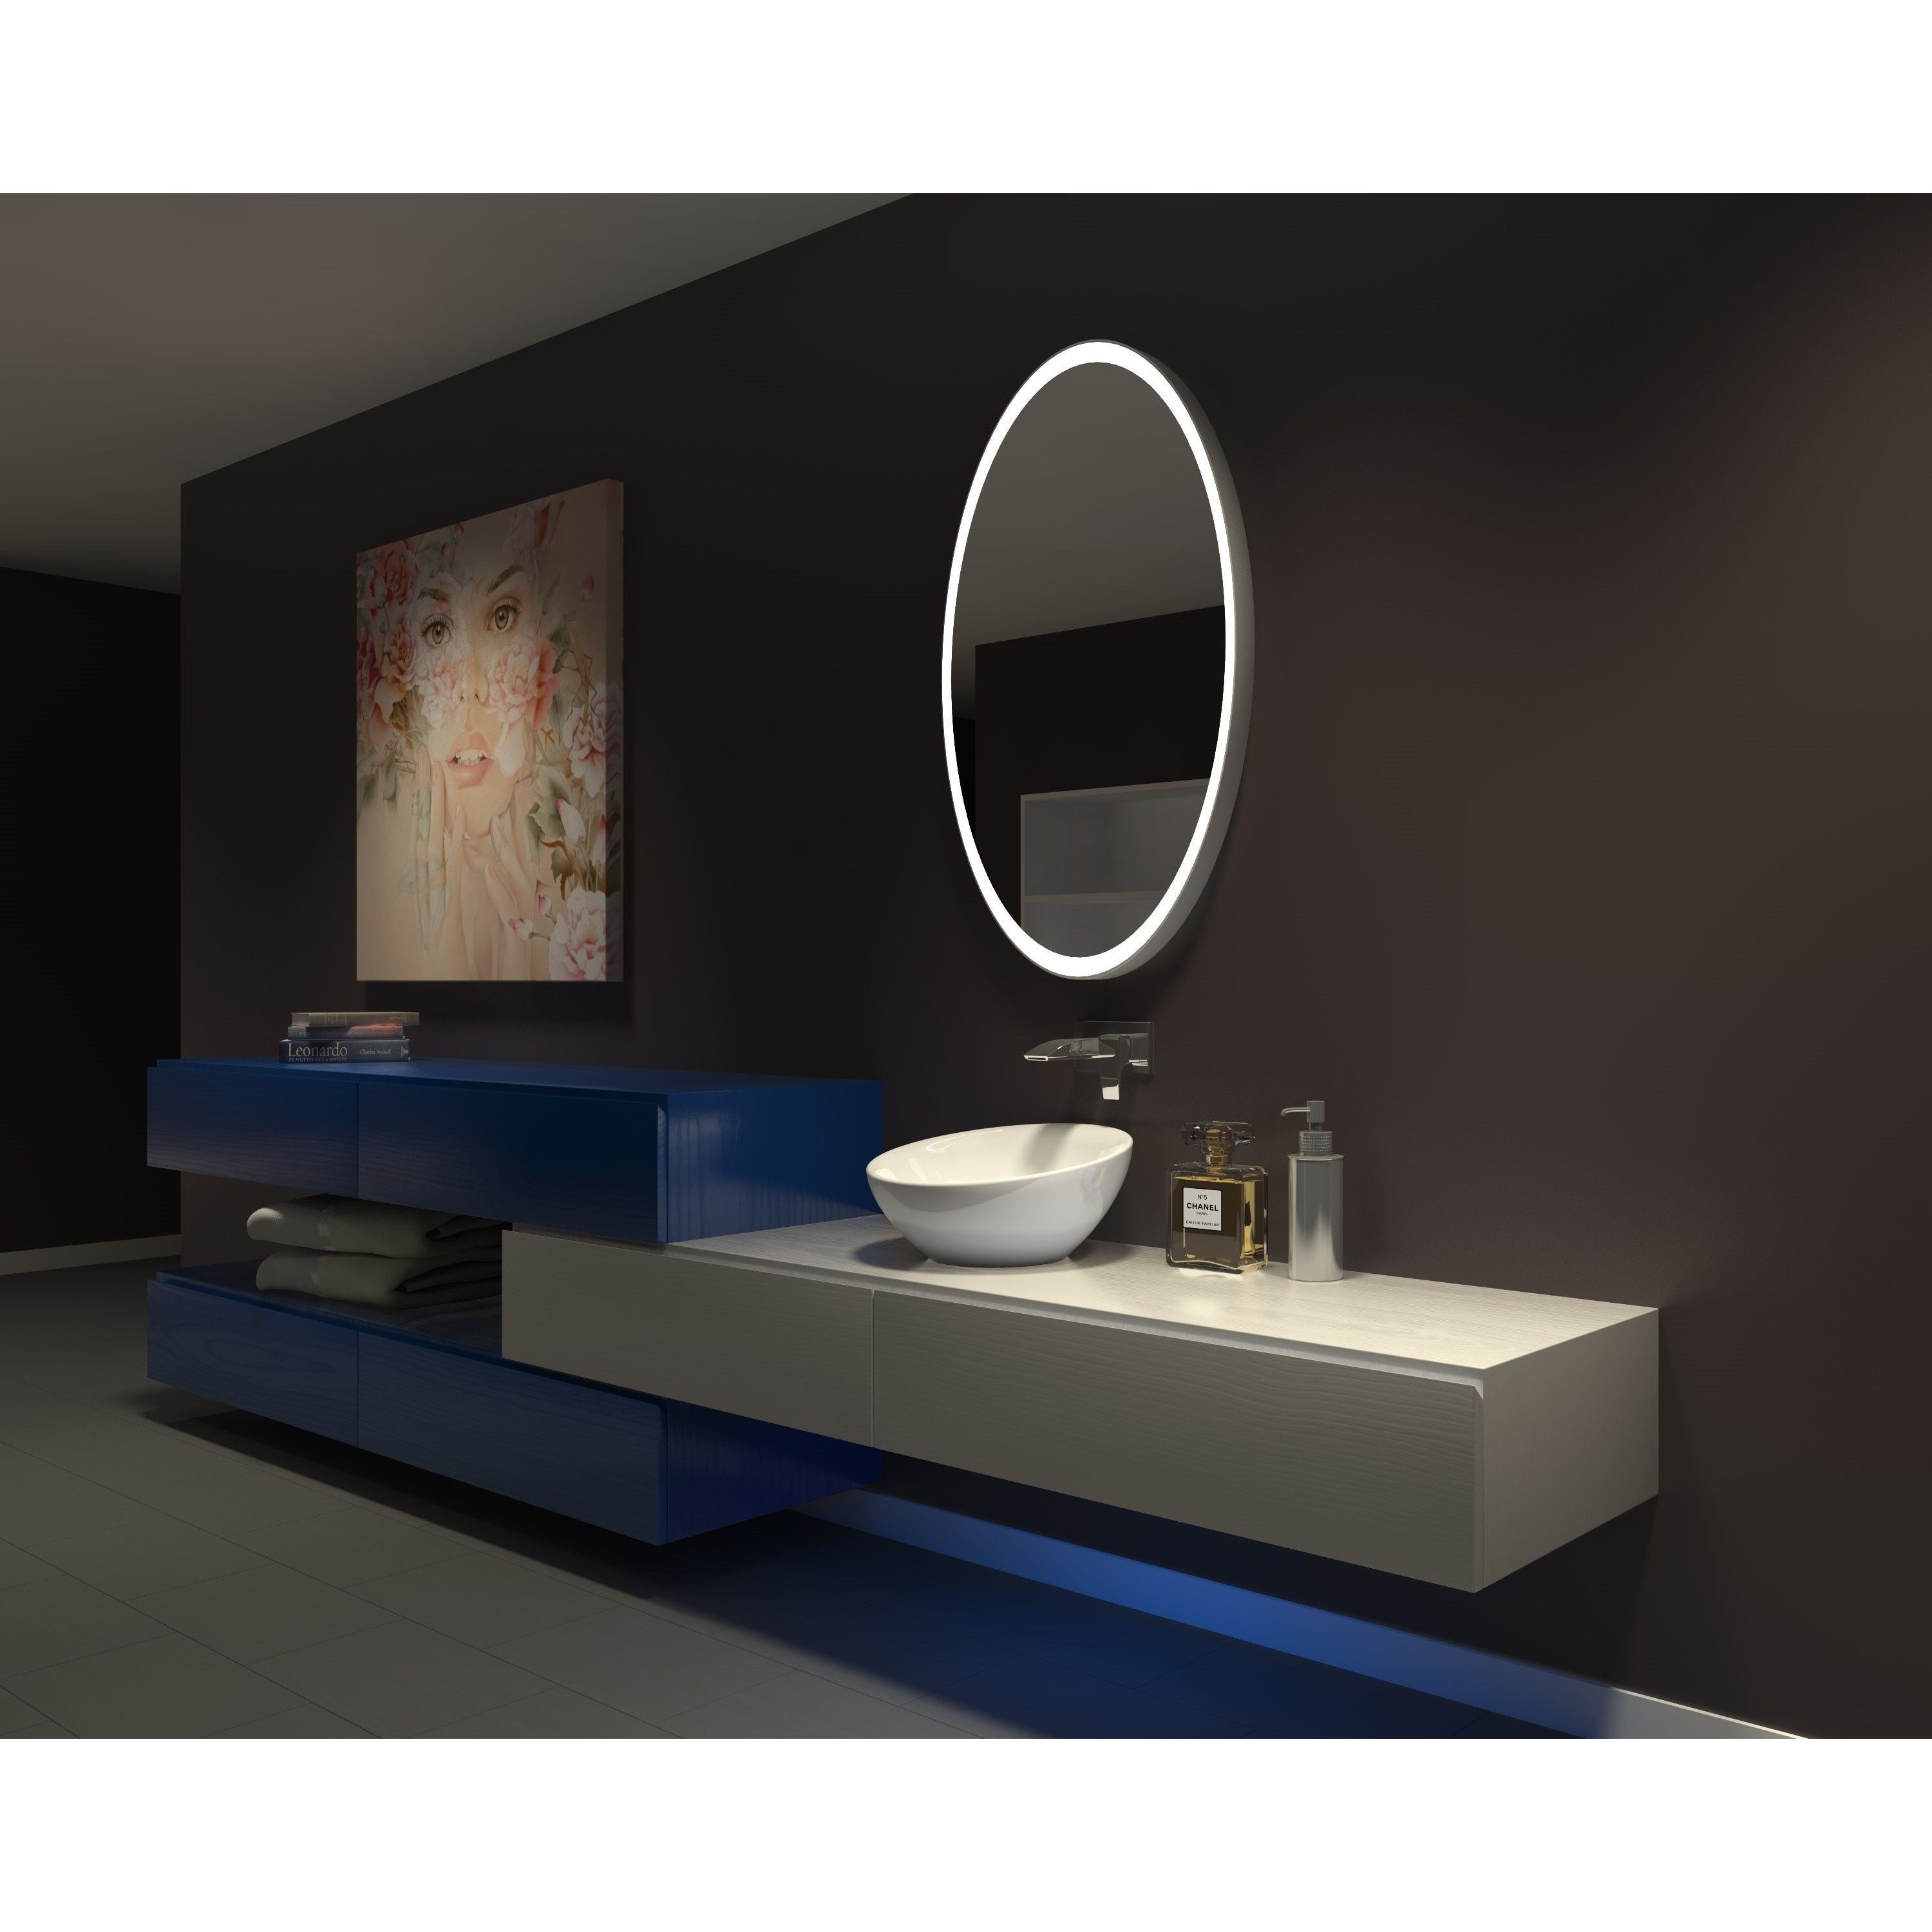 Make Photo Gallery IB Mirror Dimmable Lighted Bathroom Mirror Galaxy In X In K